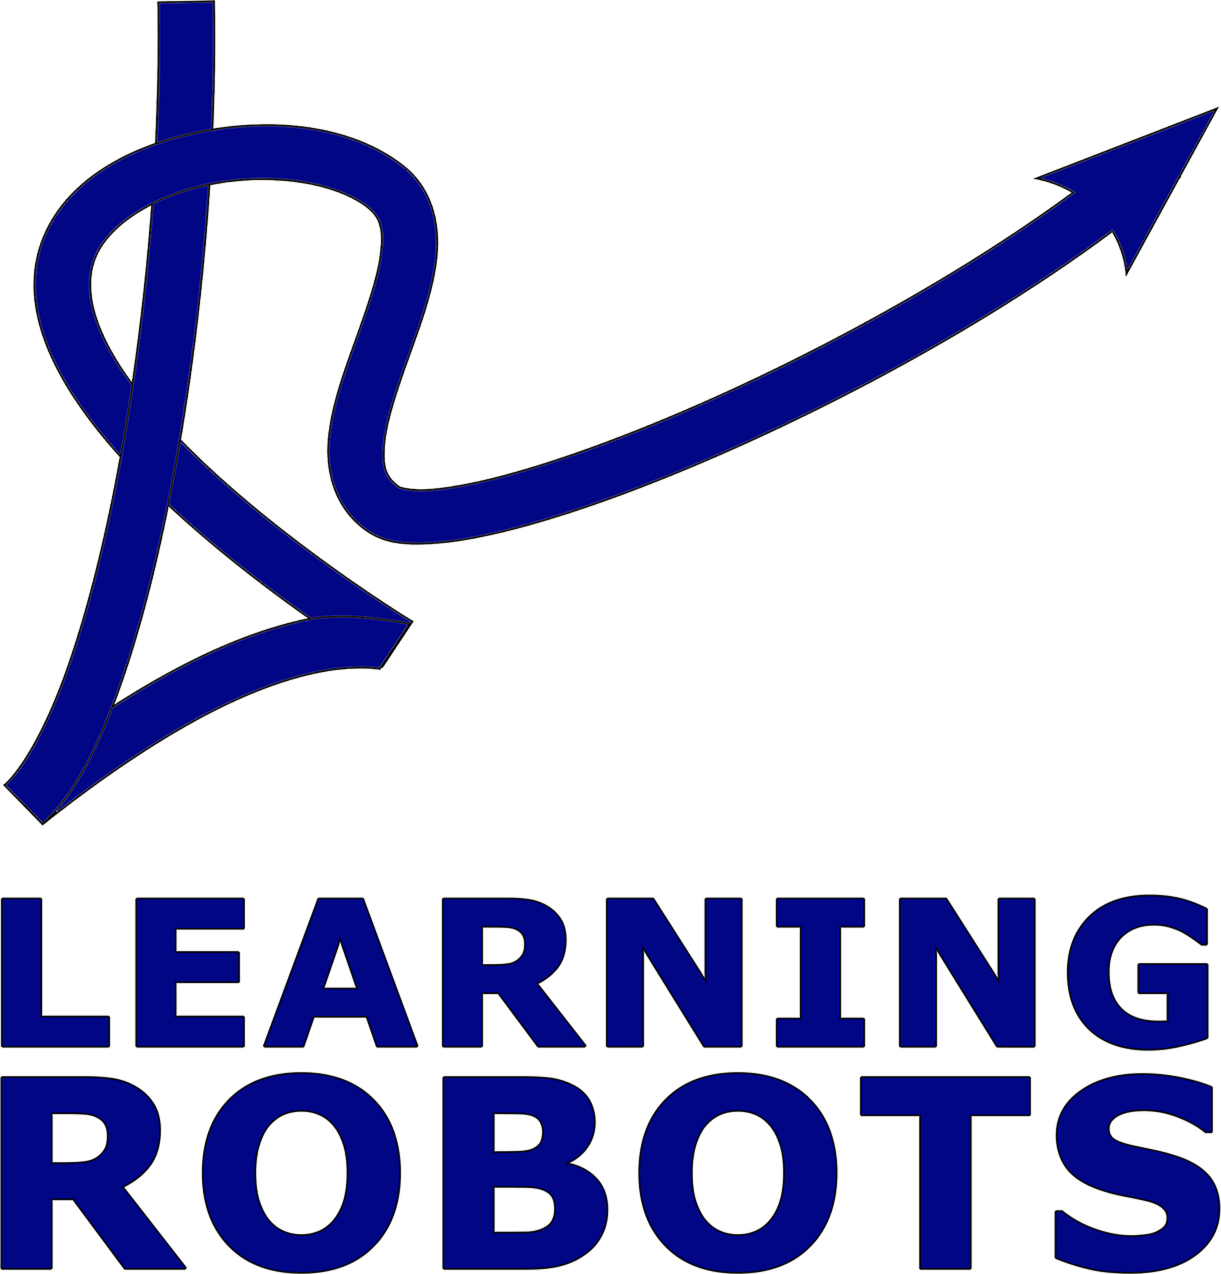 LEARNING ROBOTS